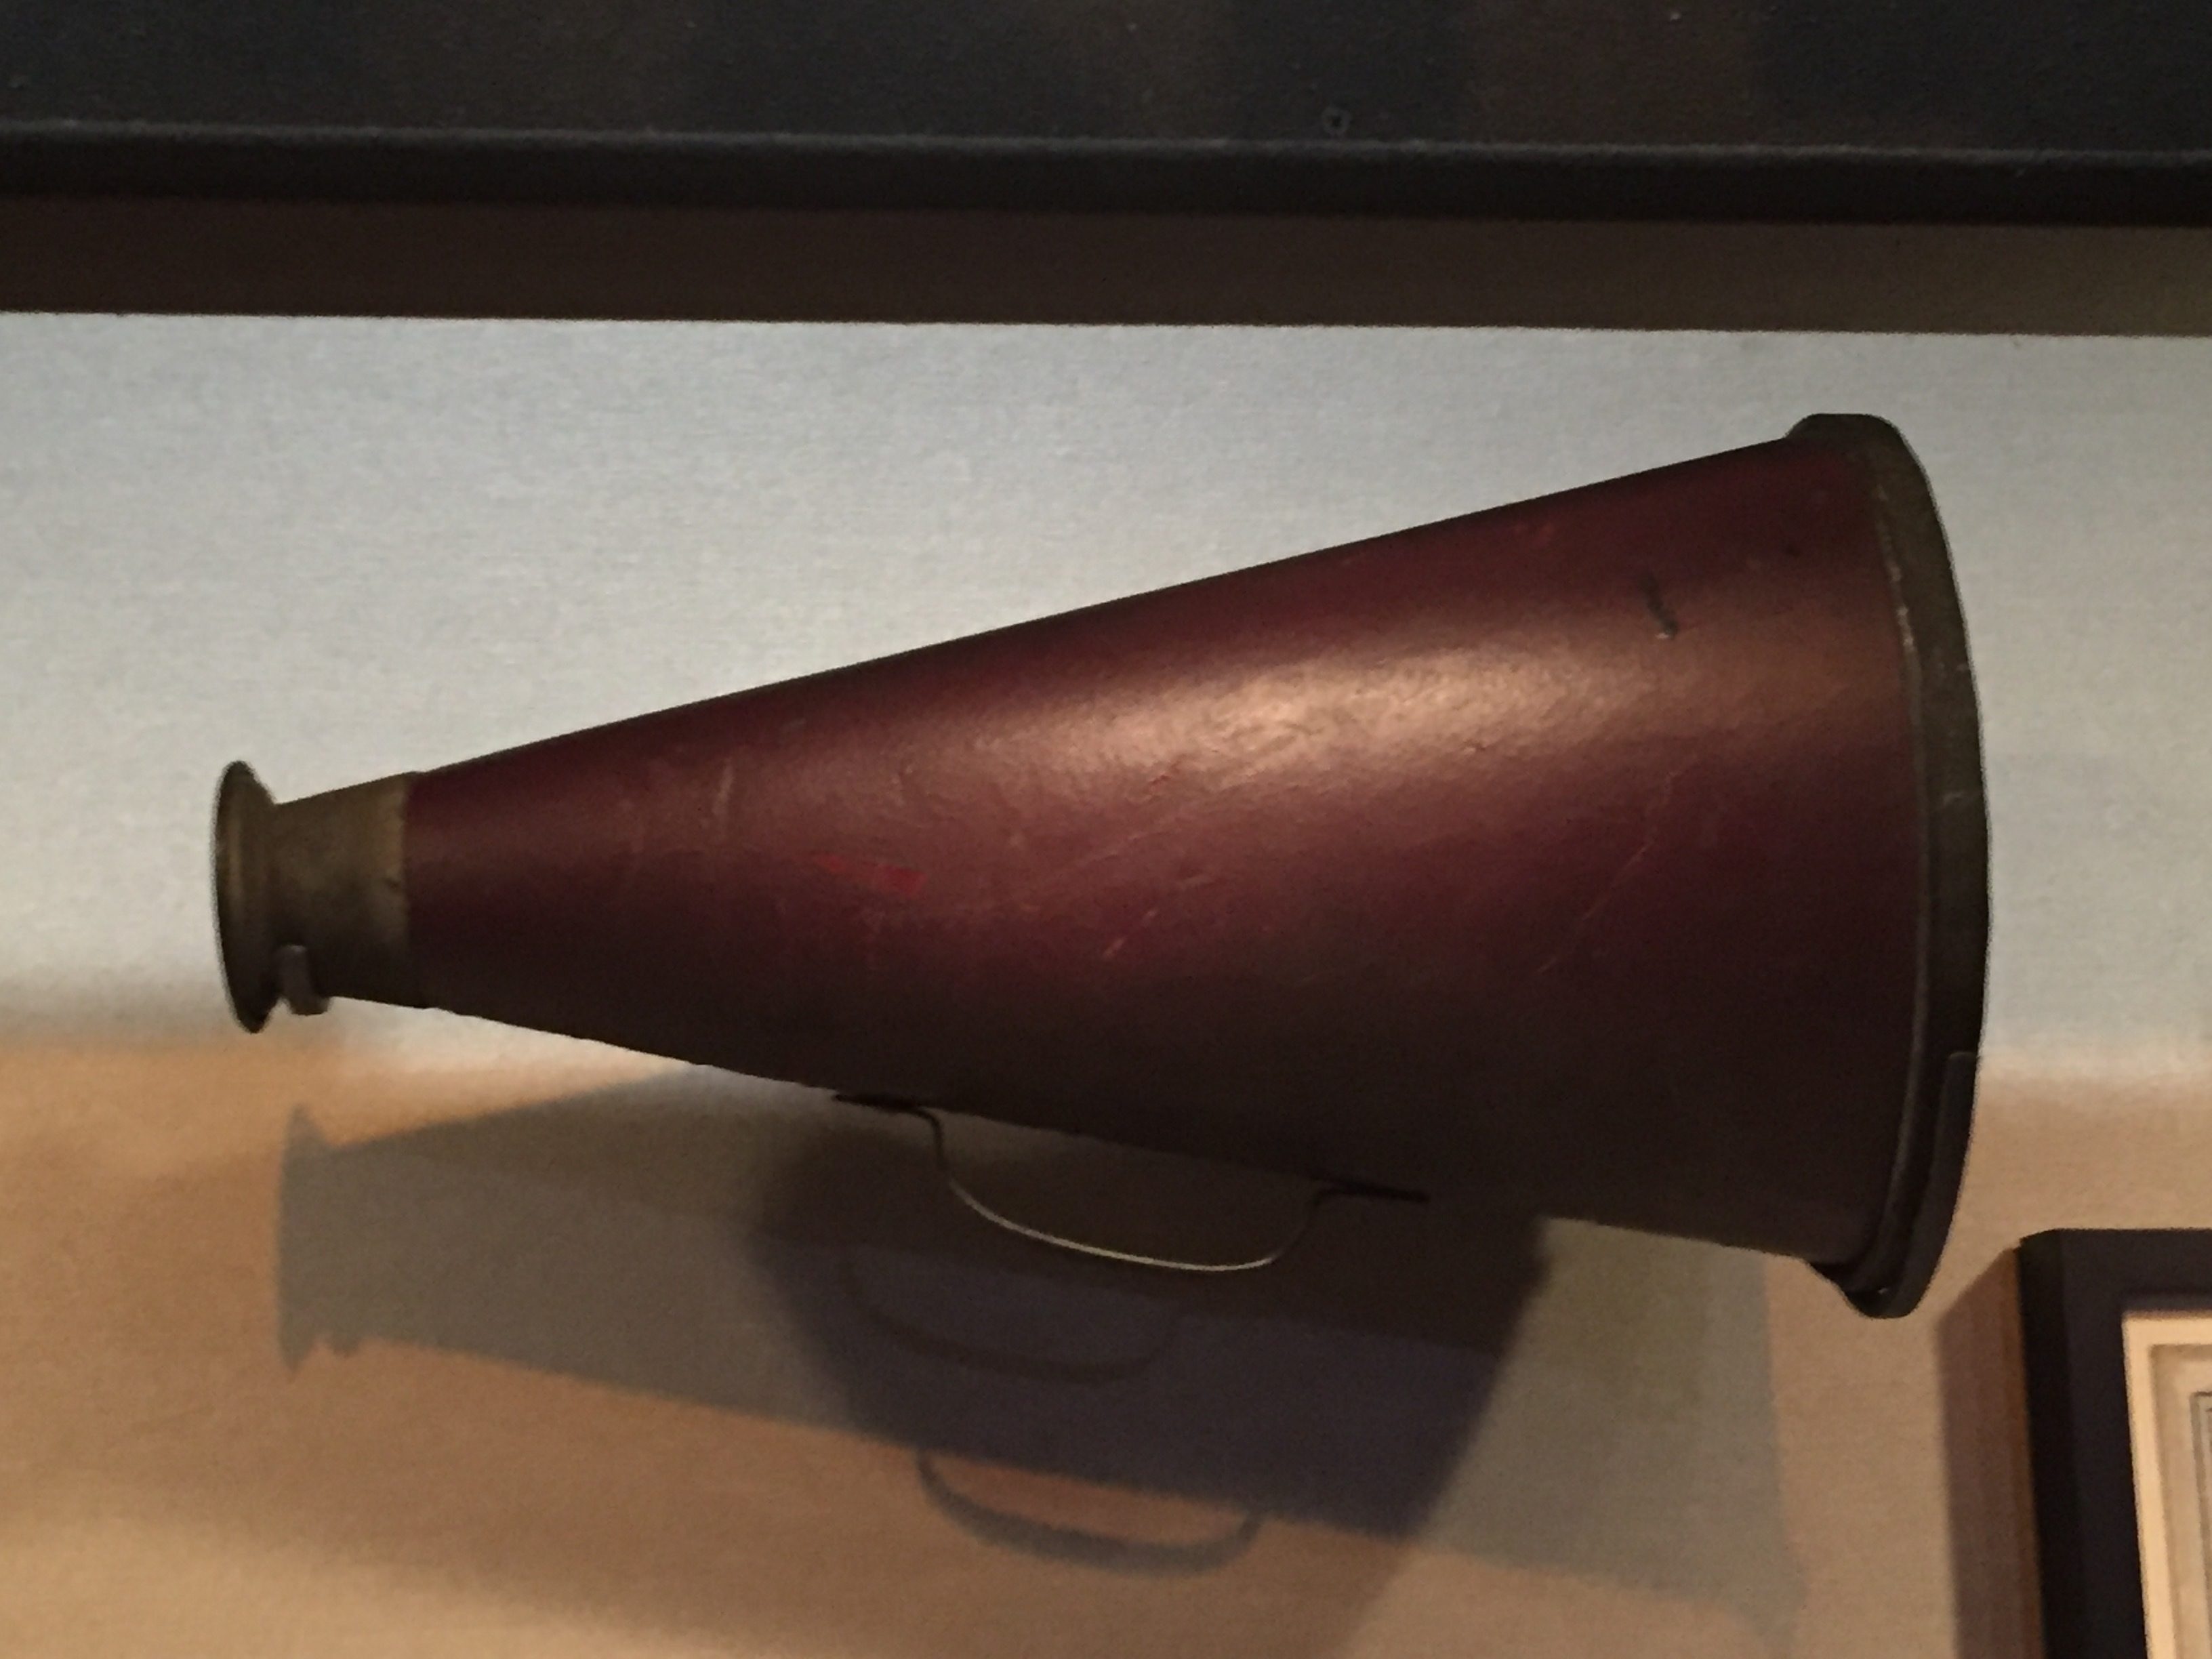 An old-style brown megaphone on display at the Chicago History Museum.